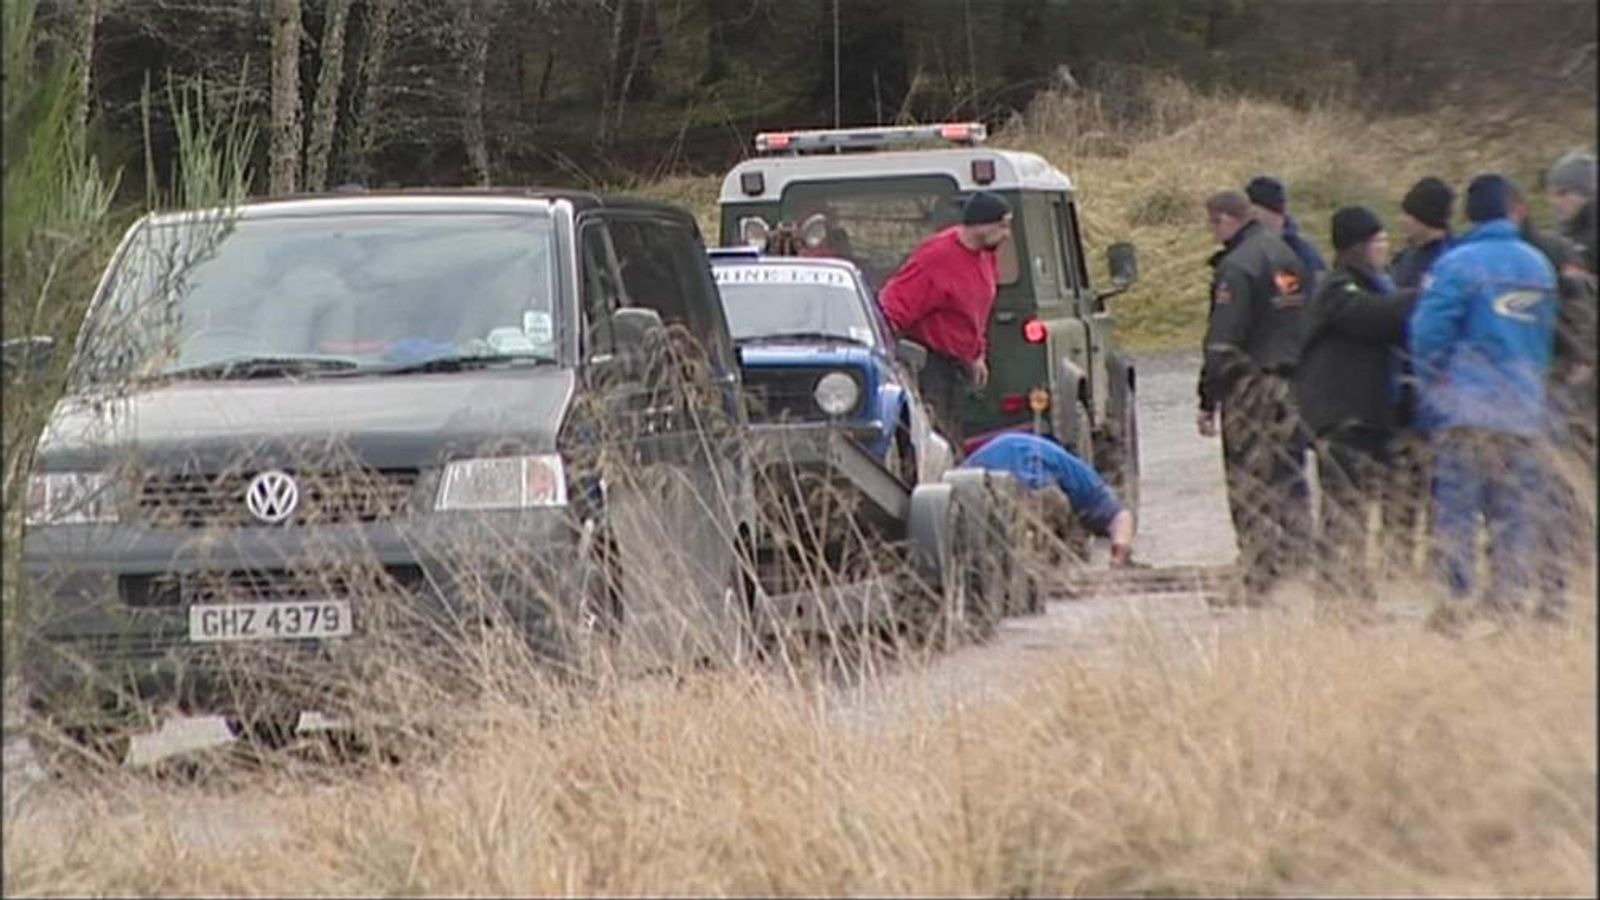 A 50-year-old woman has died after a car collided with spectators during a rally in the Scottish Highlands.